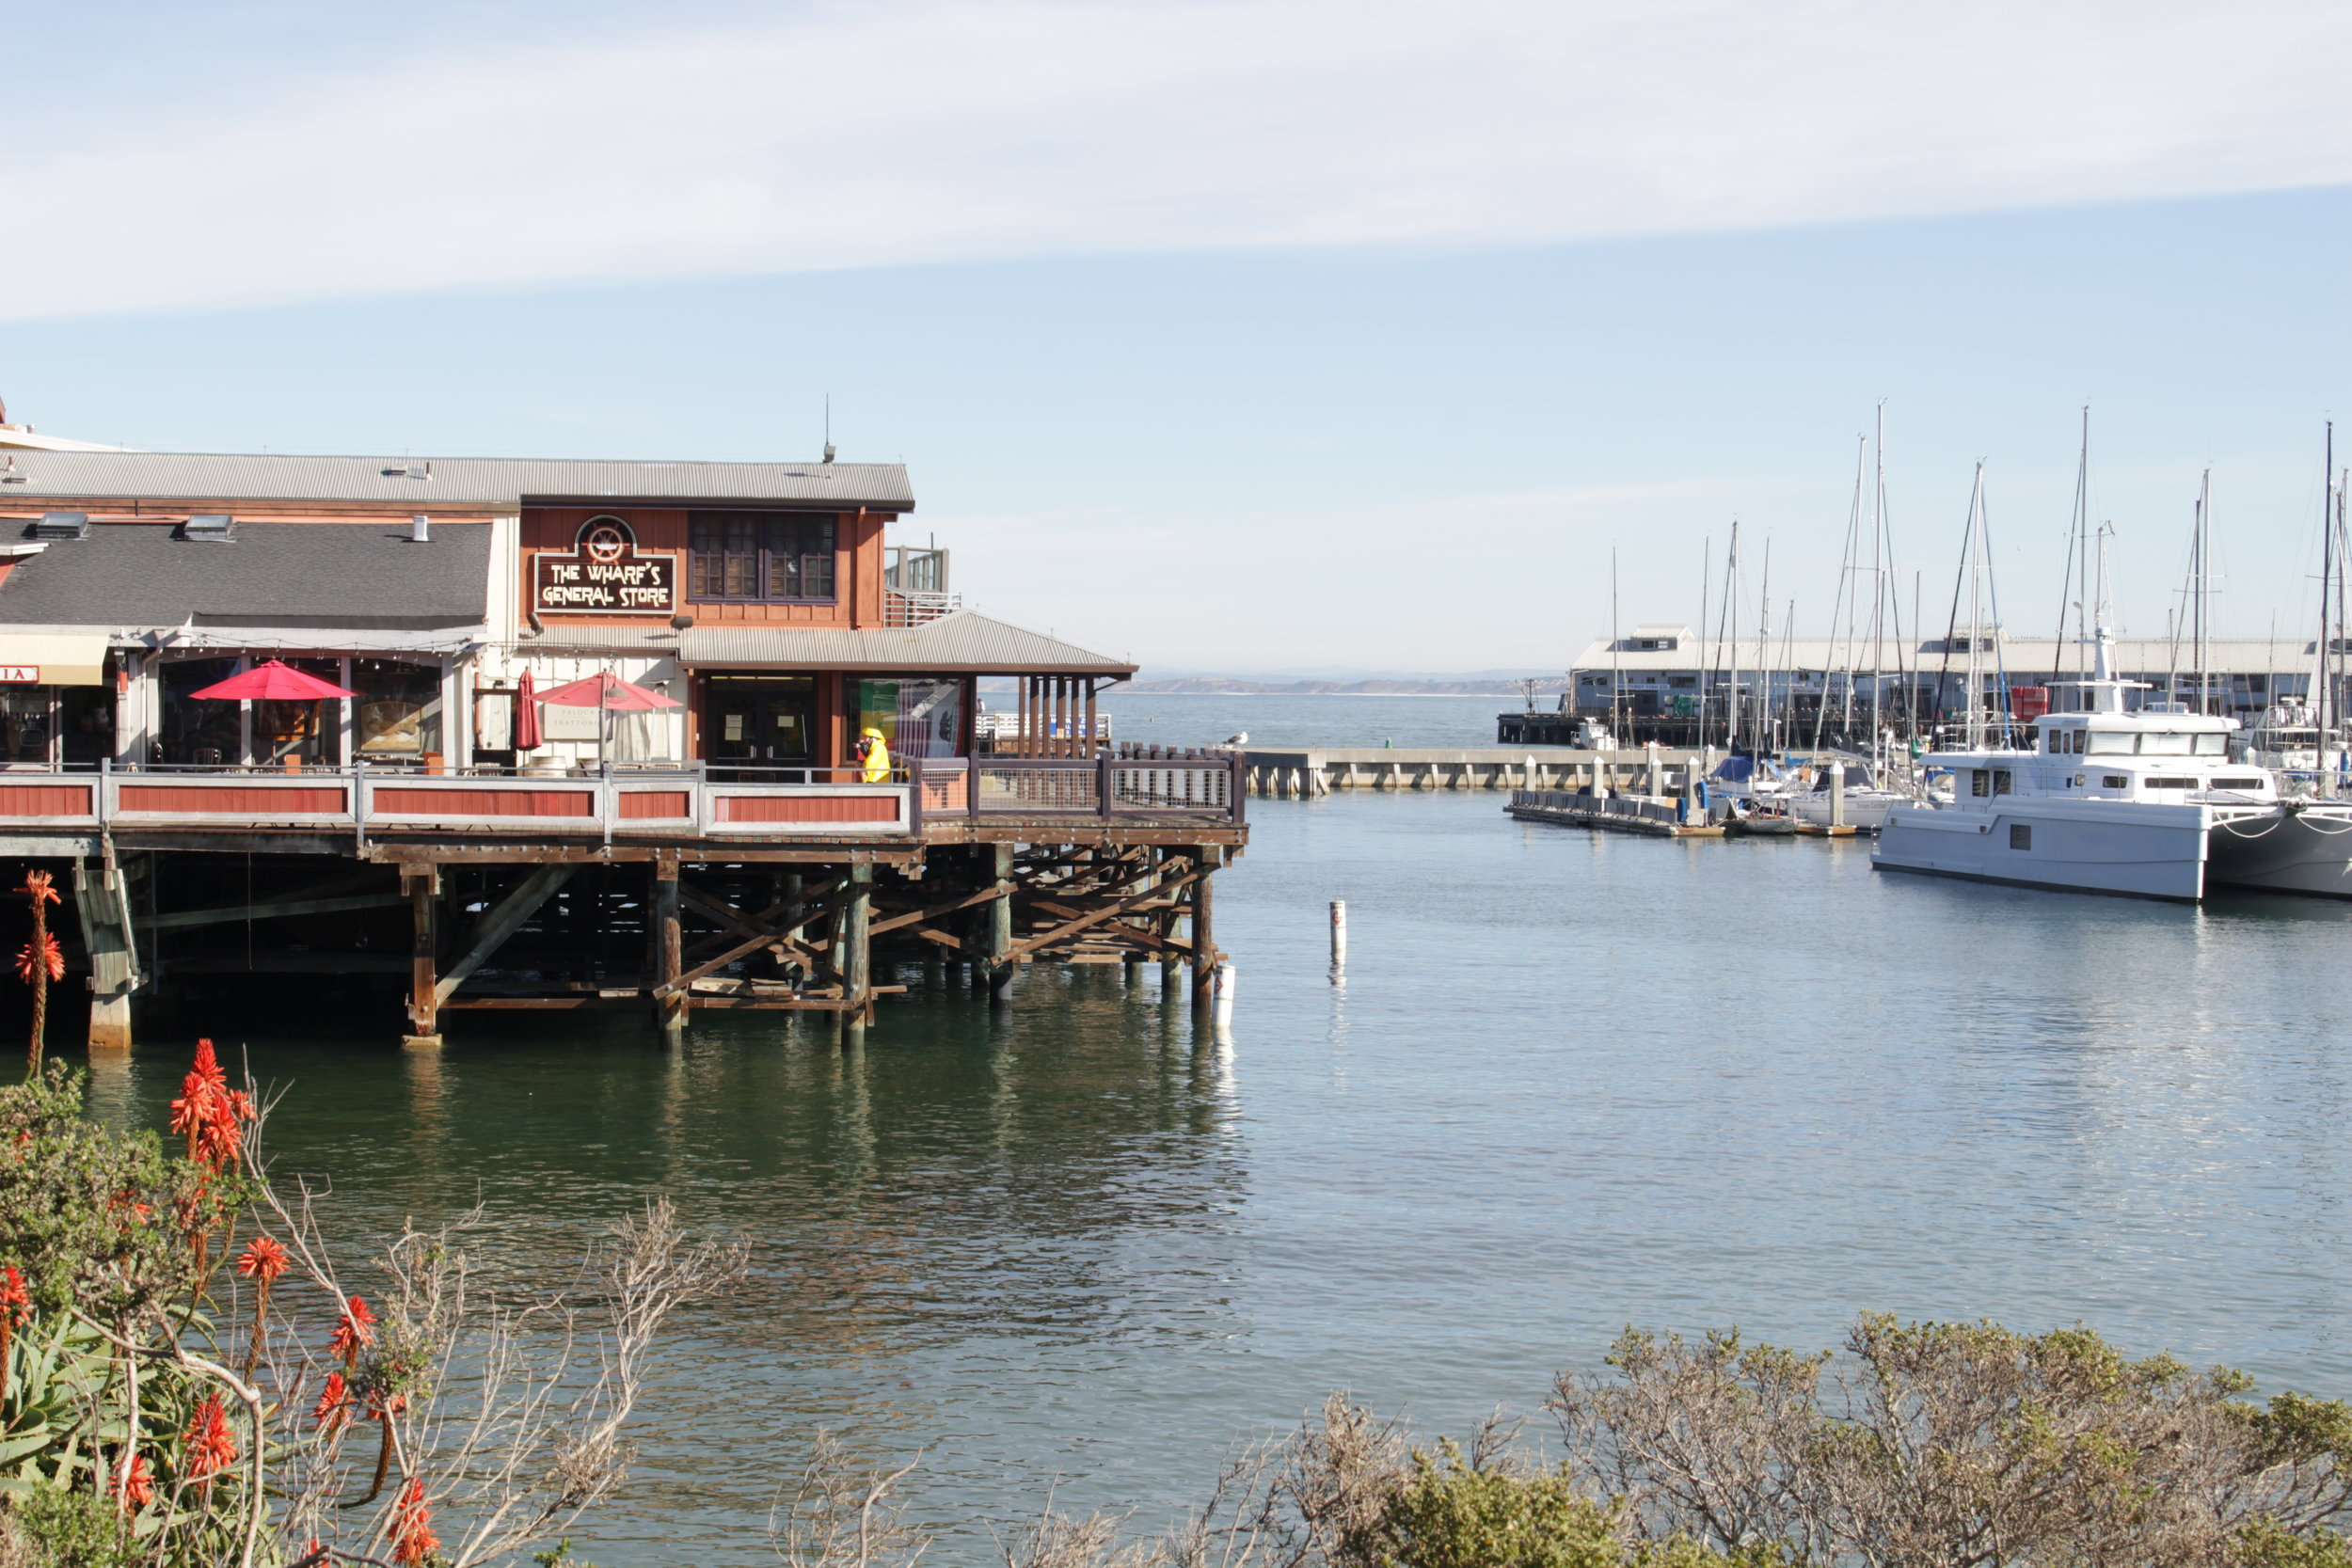 The Monterey Wharf that we passed on our walk from the hotel to Cannery Row.